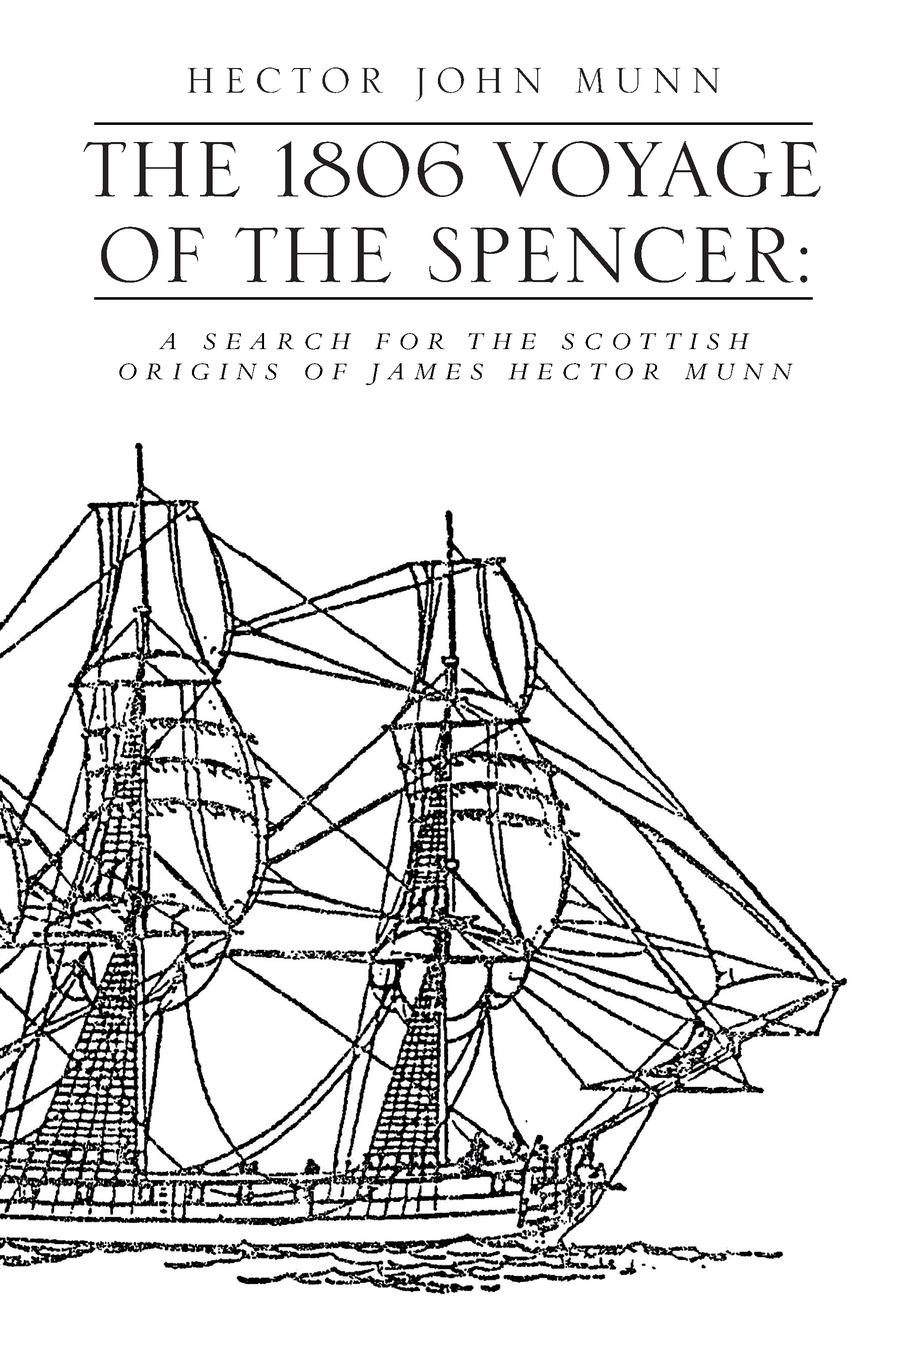 Hector John Munn, Hector John Munn The 1806 Voyage of the Spencer. A Search for the Scottish Origins of James Hector Munn dowden john bp of edinburgh the annotated scottish communion office